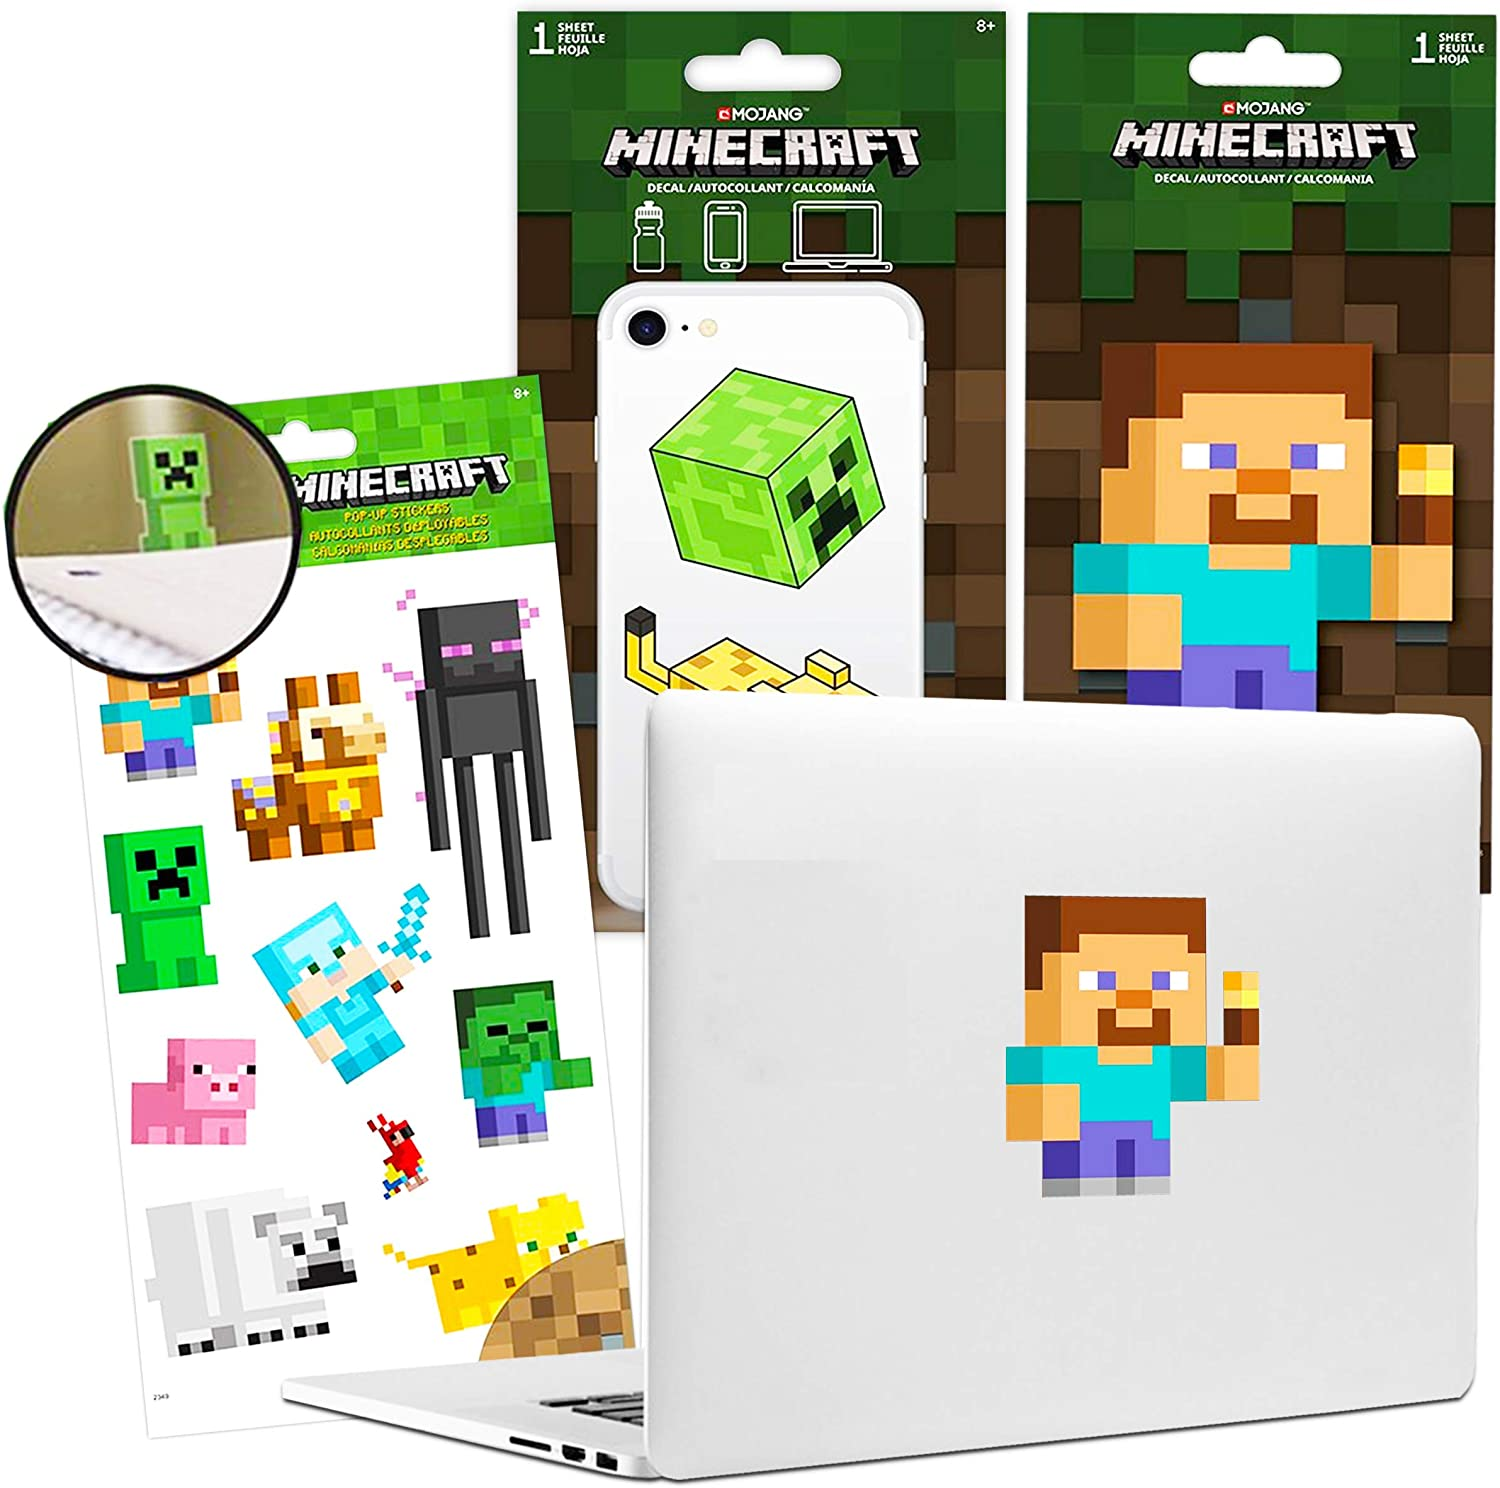 Minecraft Video Game Party Supplies Bundle - 23 Pc Minecraft Decal Stickers Video Game Room Decorations (Minecraft Video Game Party Supplies)